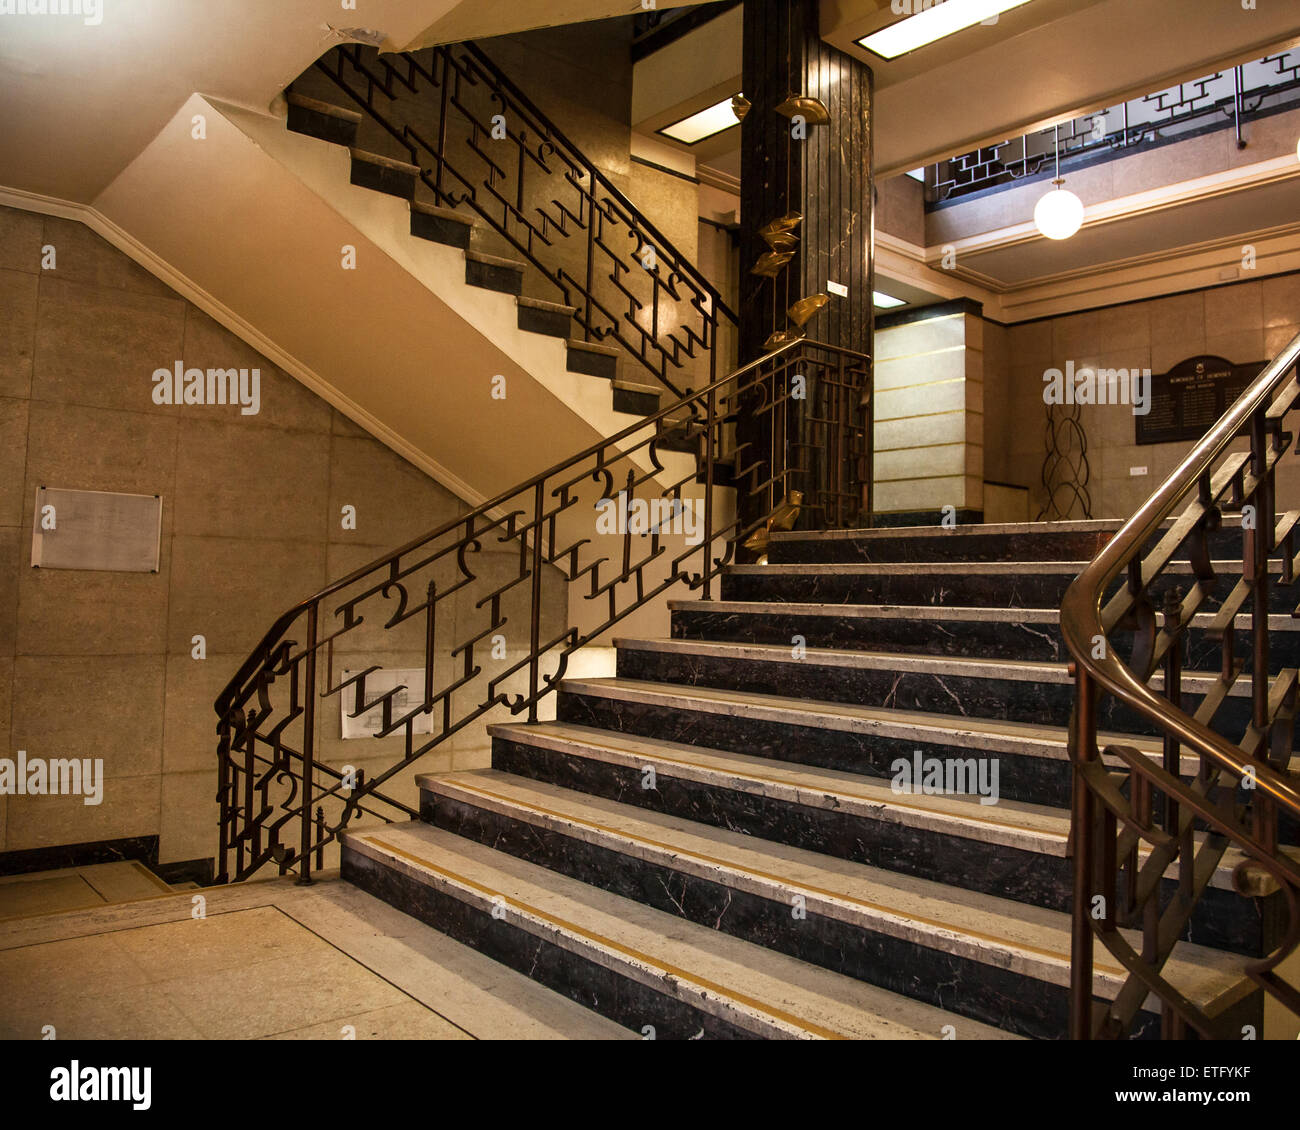 art deco staircase hornsey town hall london stock photo royalty free image 83944211 alamy. Black Bedroom Furniture Sets. Home Design Ideas